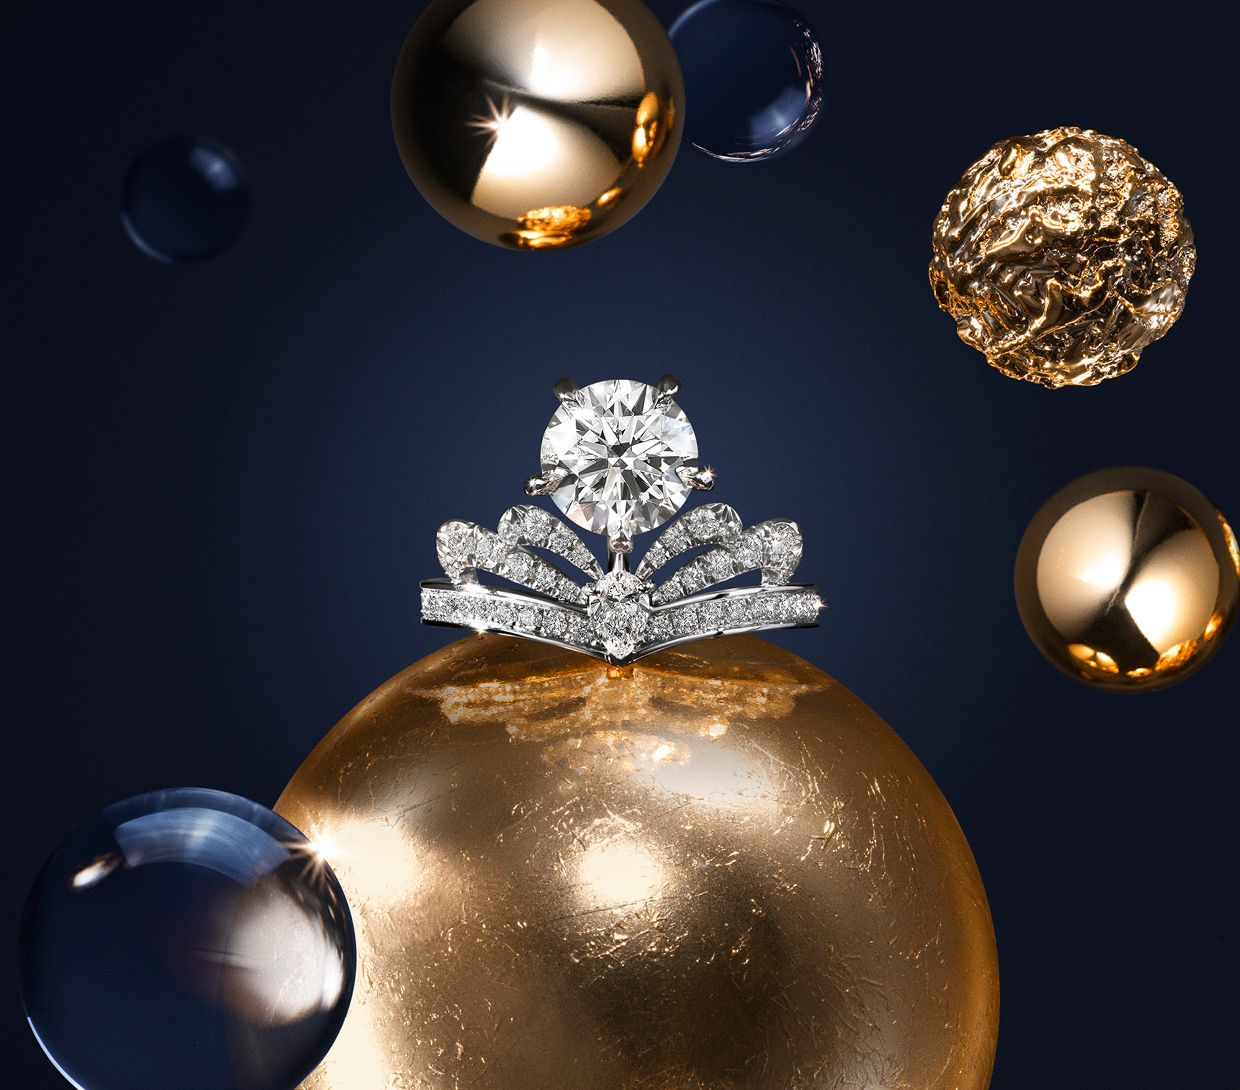 Discover Sophisticated Style And Intriguing Motifs With Chaumet's Regal Gifting Ideas